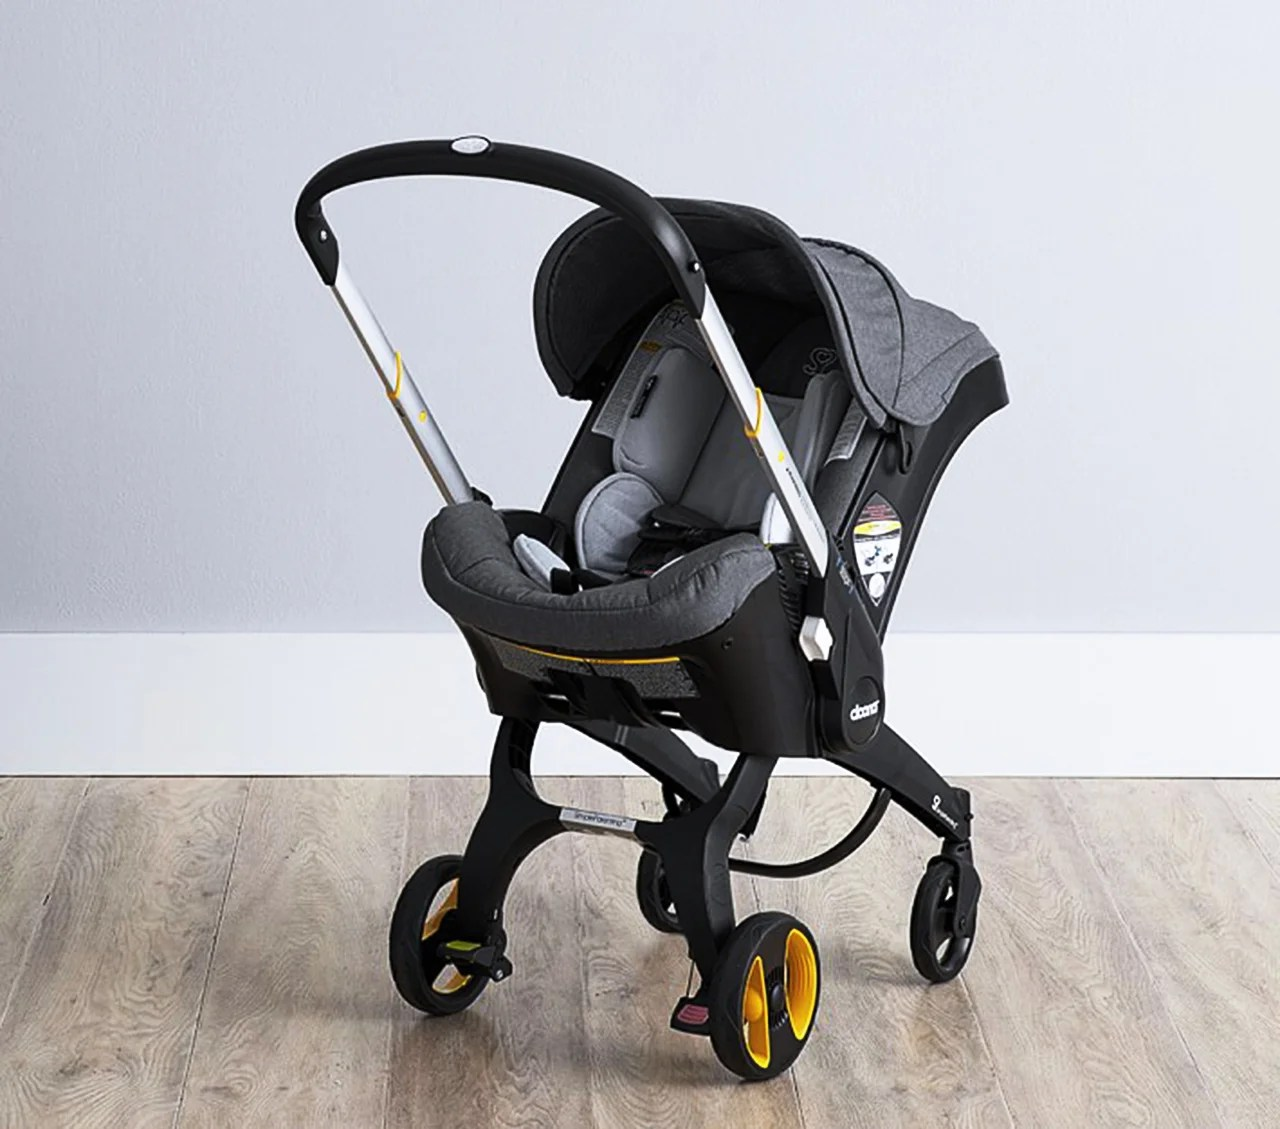 Universal Car Seat Stroller Frame Meet The Car Seat That Converts Into A Stroller In Seconds